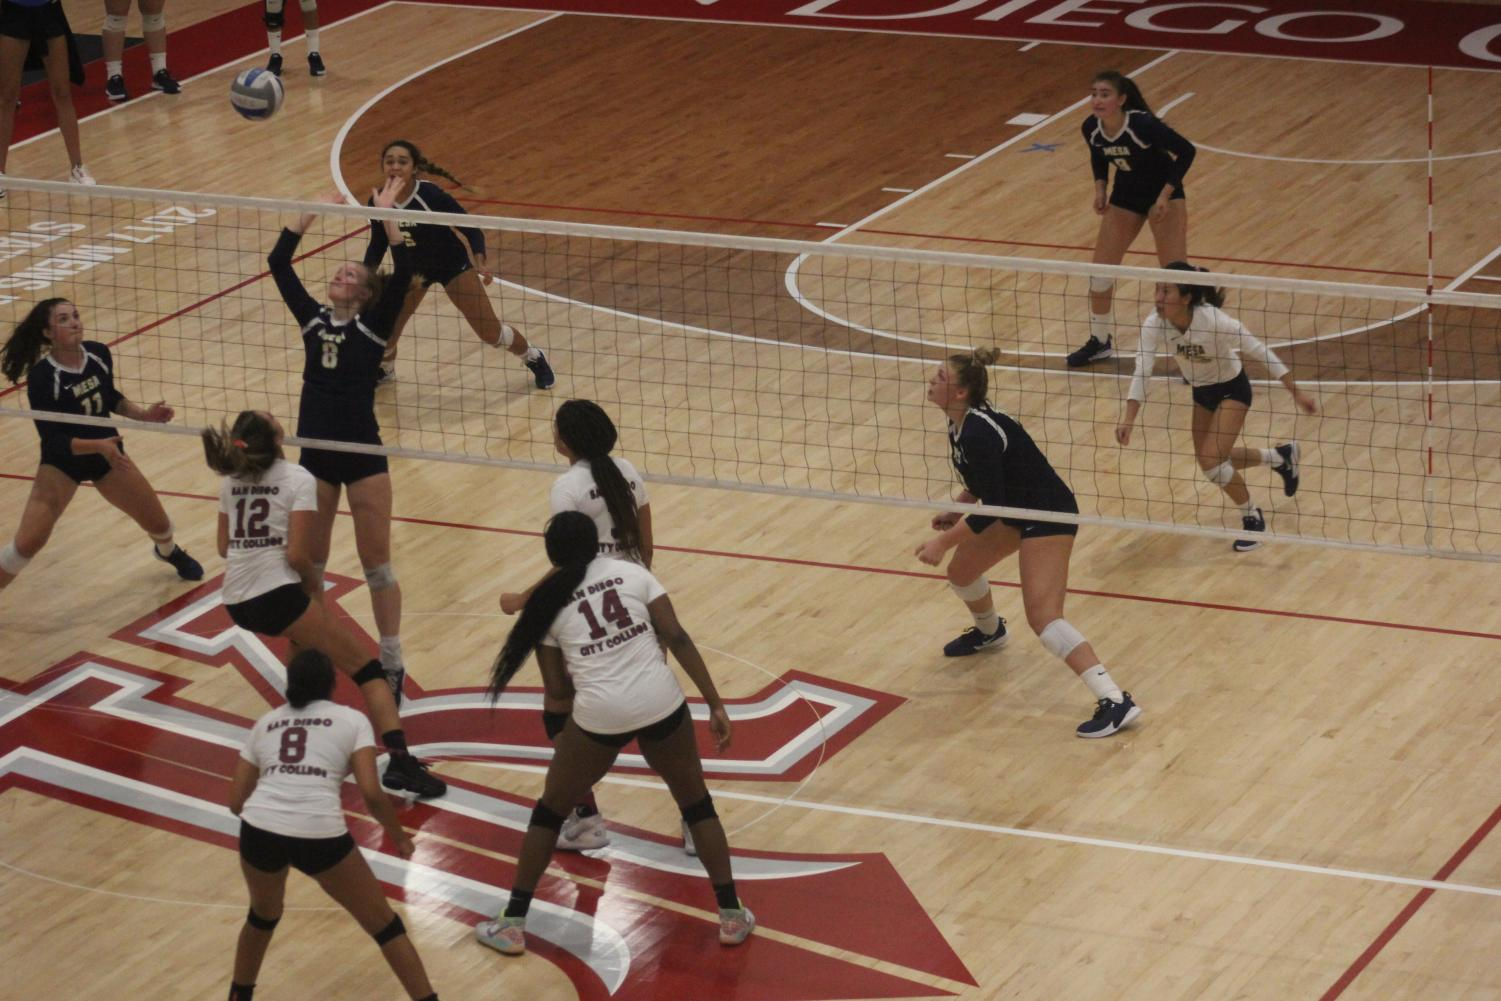 San Diego City College Women's Volleyball team playing. Oct. 2019.